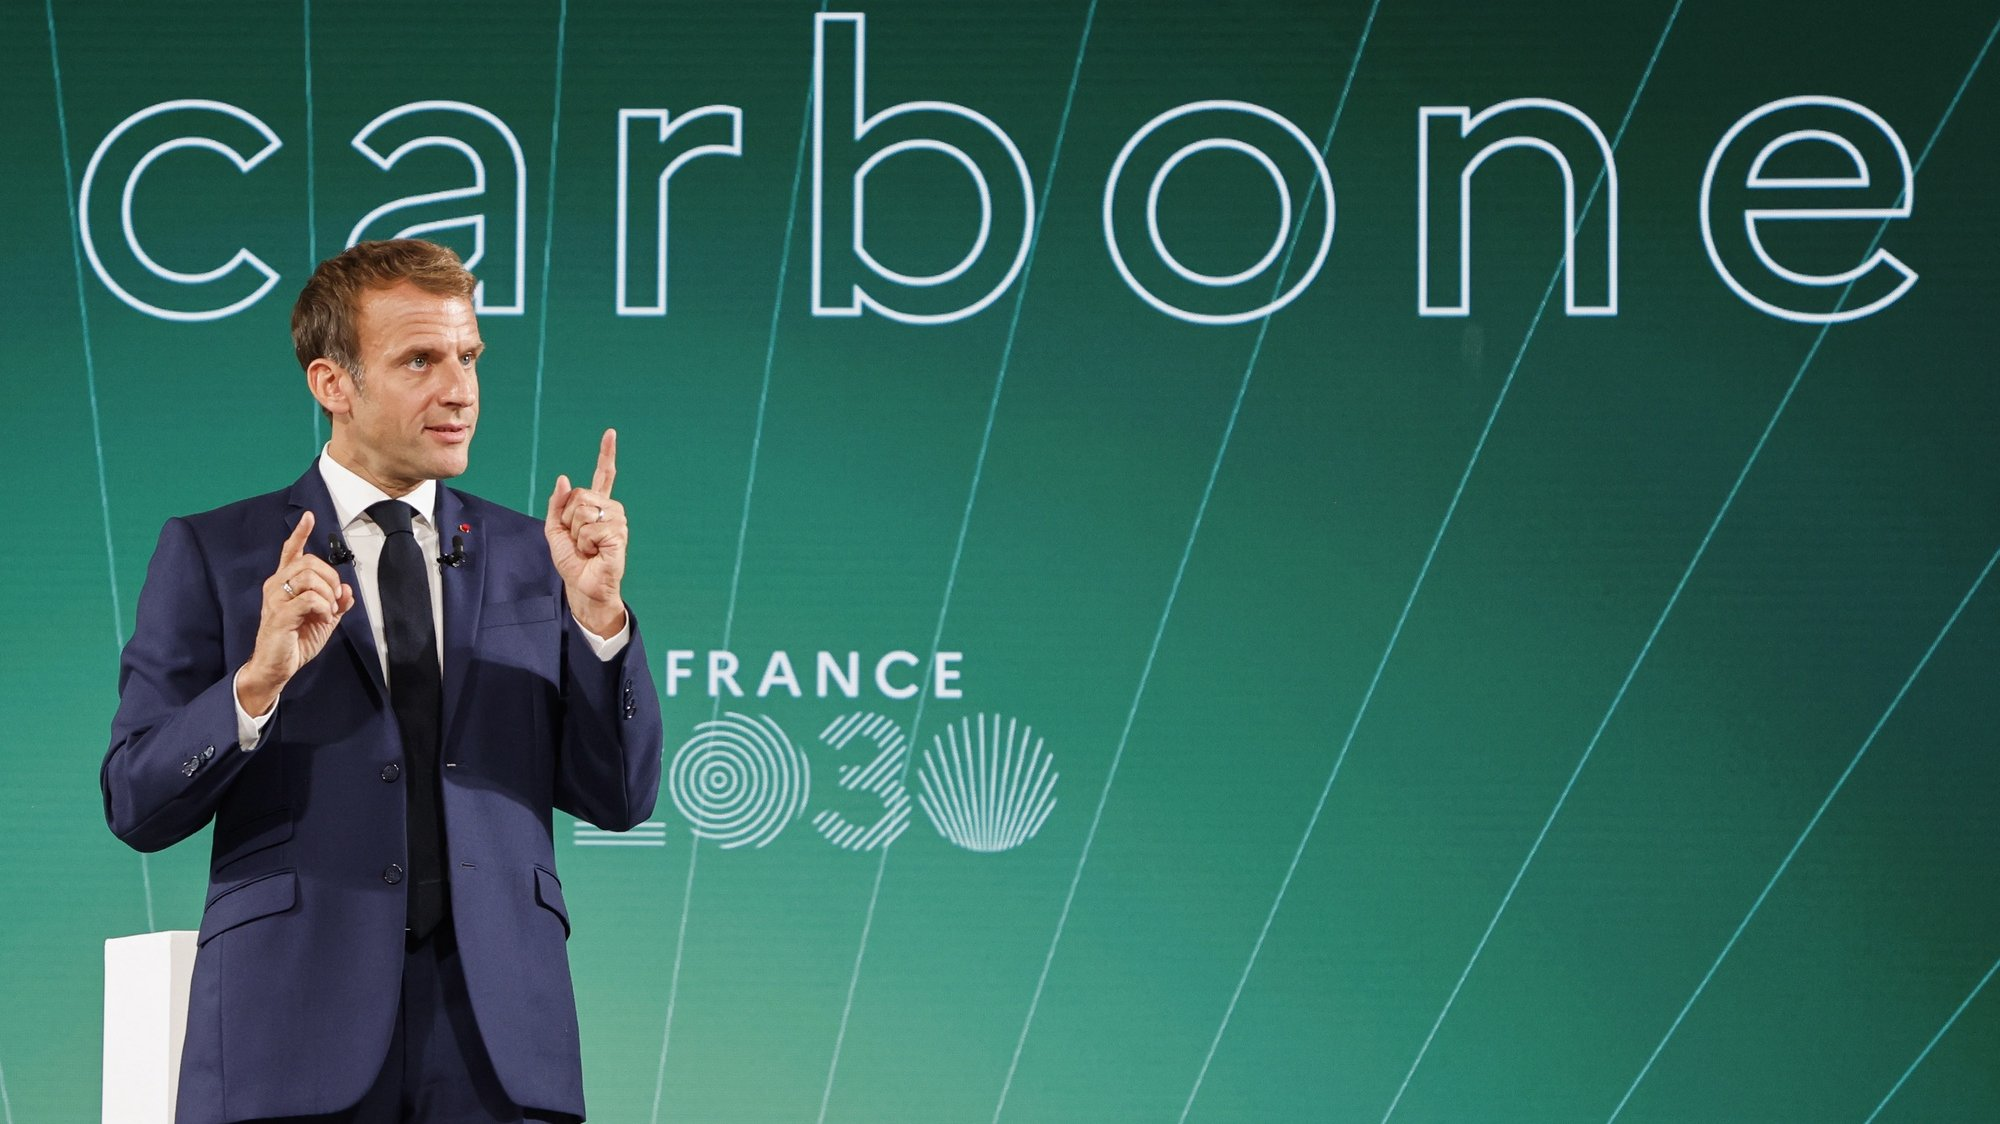 """epa09519734 France's President Emmanuel Macron speaks in front of a screen with the word """"Carbon"""" during the presentation of """"France 2030"""" investment plan at The Elysee Presidential Palace in Paris, France, 12 October 2021. Hydrogen, semiconductors or electric batteries: French President Macron details on 12 October 2021 the priority sectors of the """"France 2030"""" plan to """"bring out the champions of tomorrow"""", in the face of Chinese and American competition and criticism of the """"decline"""" of France.  EPA/LUDOVIC MARIN / POOL  MAXPPP OUT"""